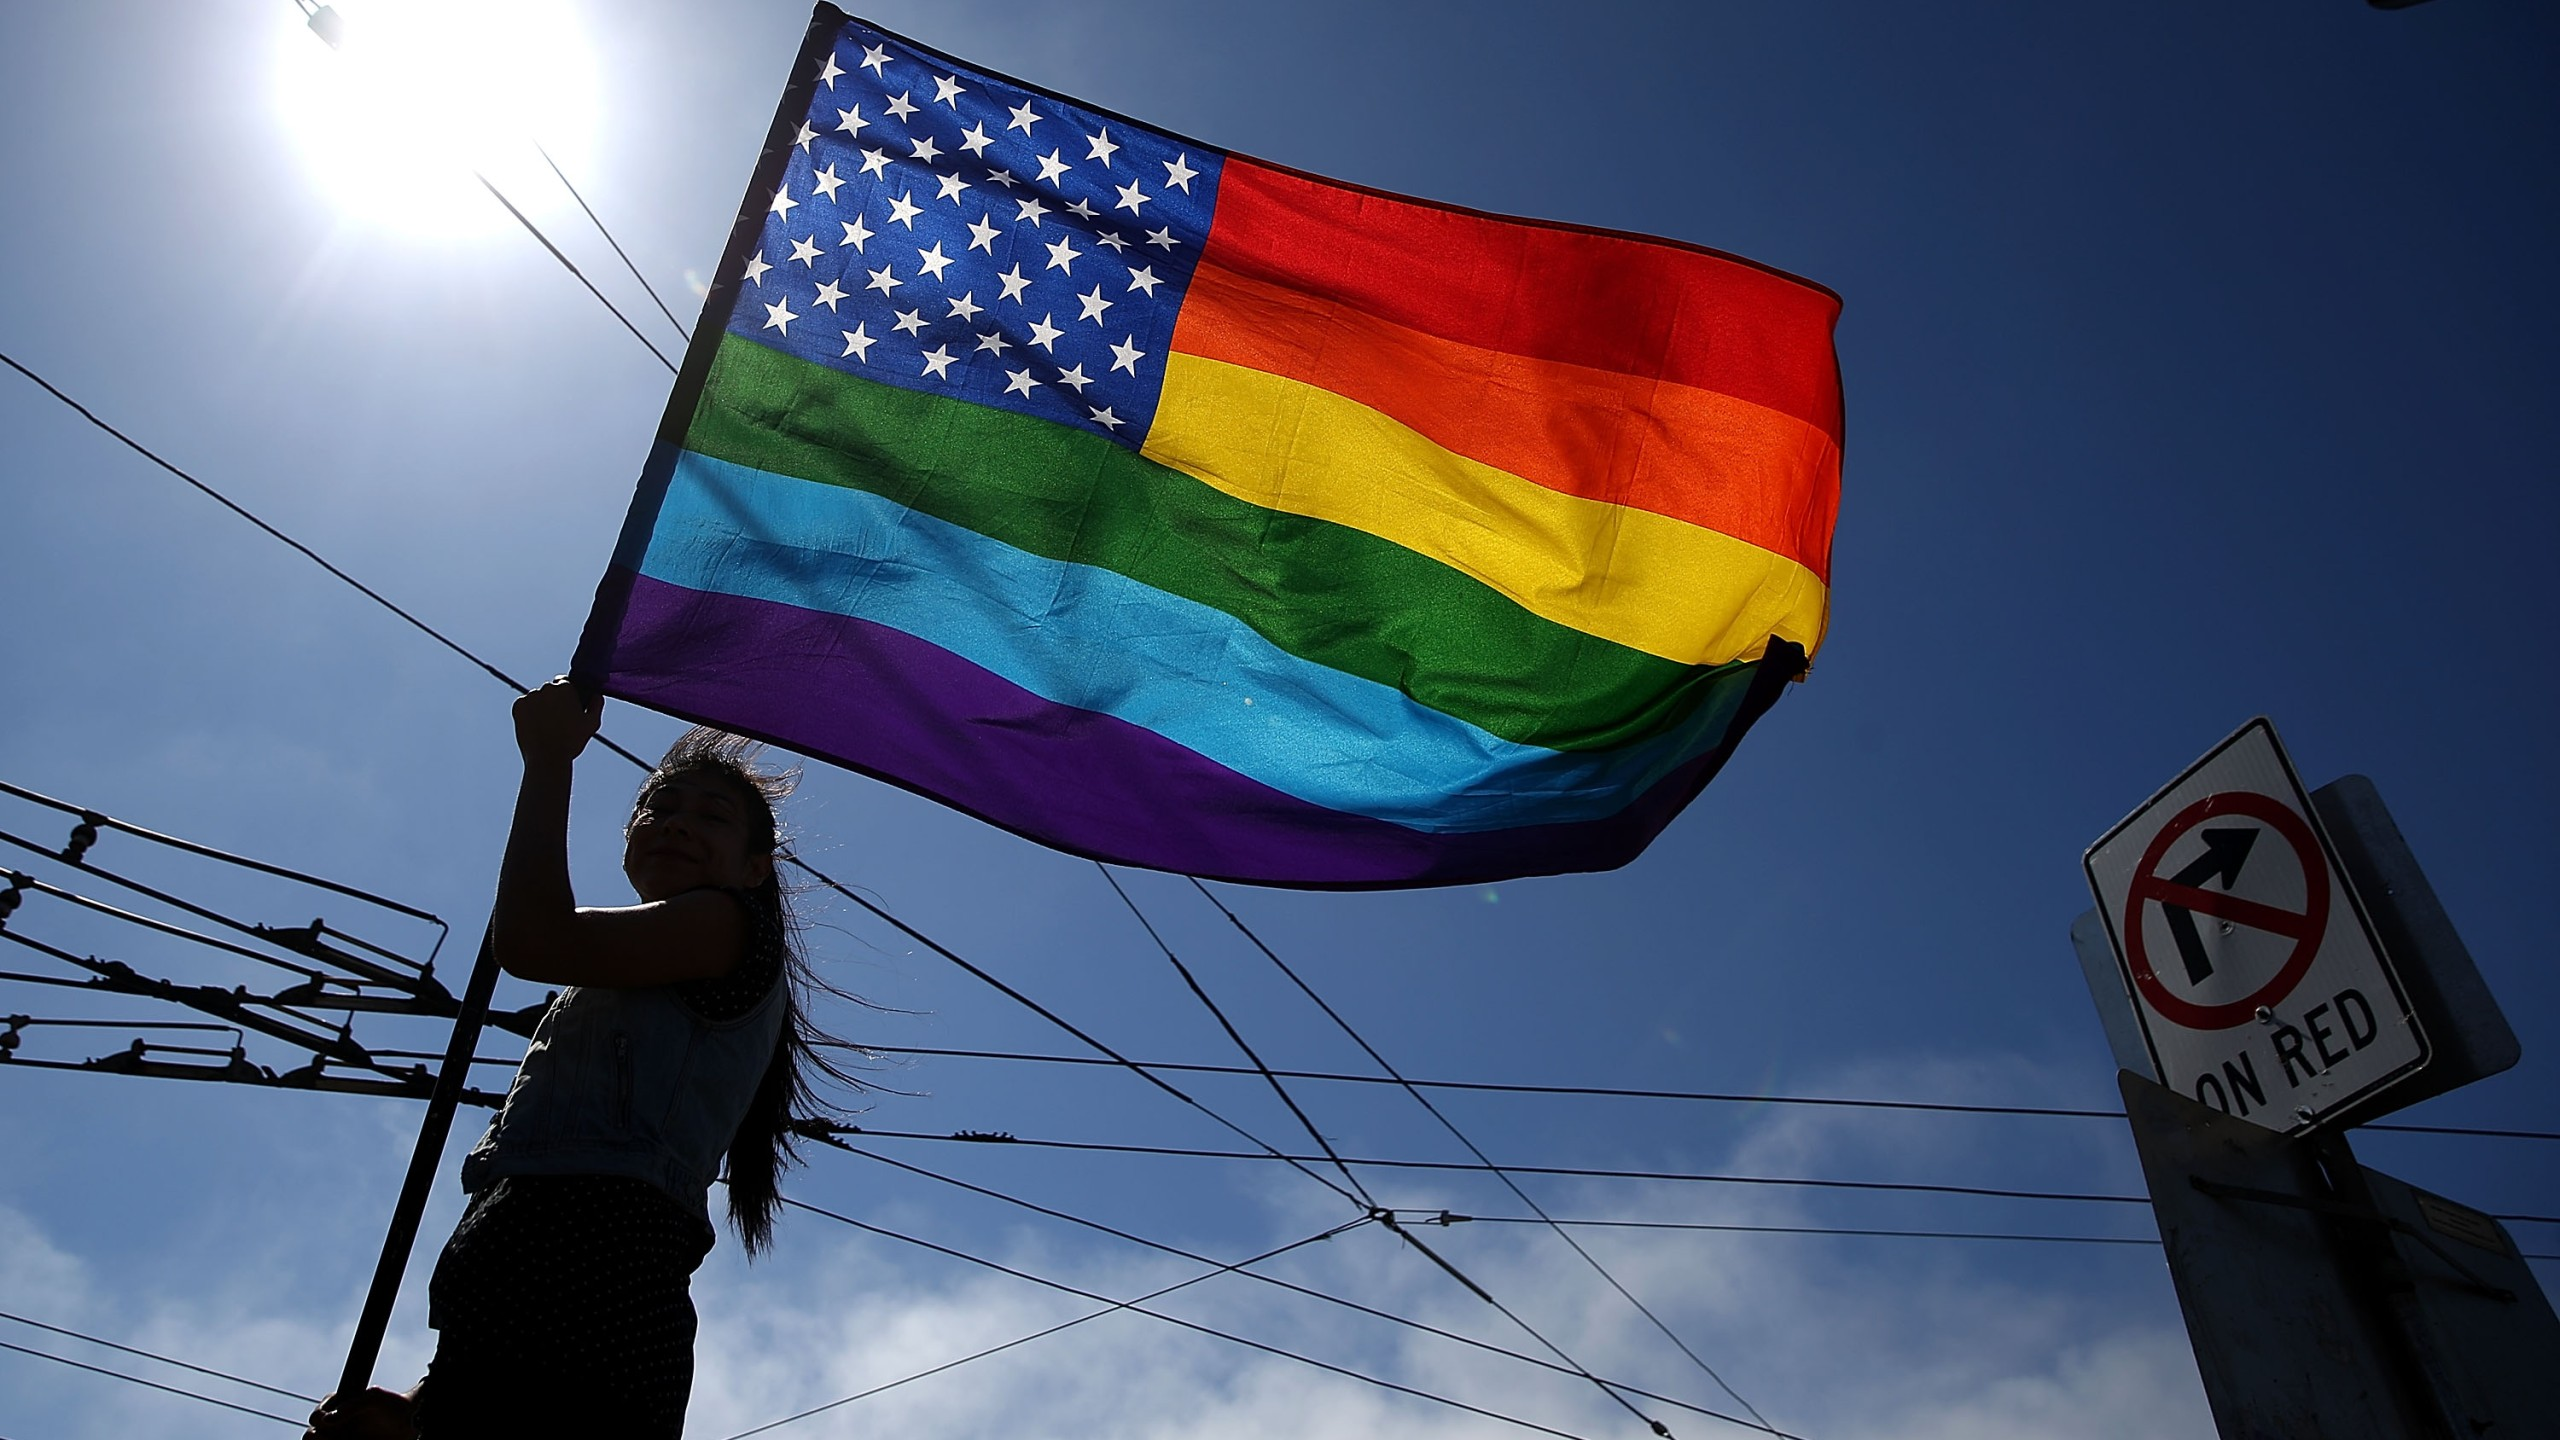 A person waves a pride flag on June 26, 2015 in San Francisco. (Credit: Justin Sullivan/Getty Images)